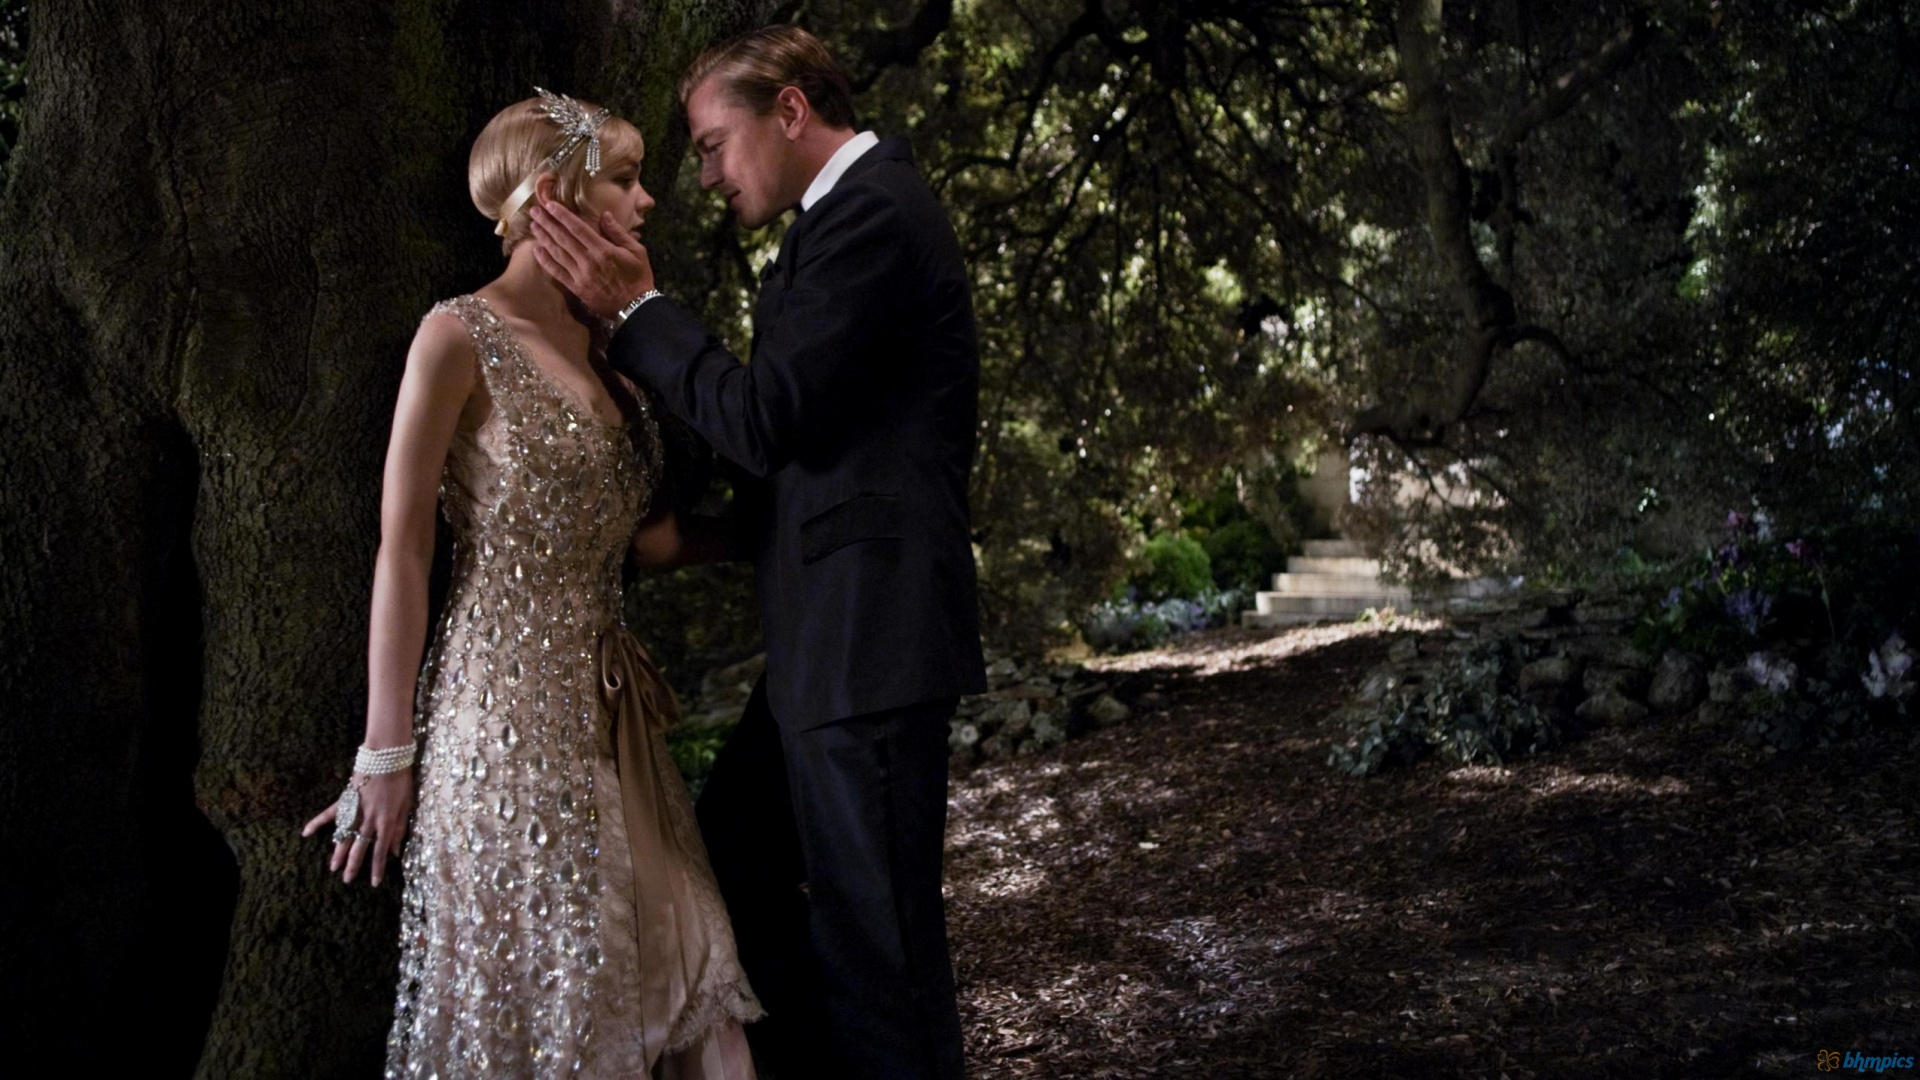 The Great Gatsby 2012 Images Love HD Wallpaper And Background Photos